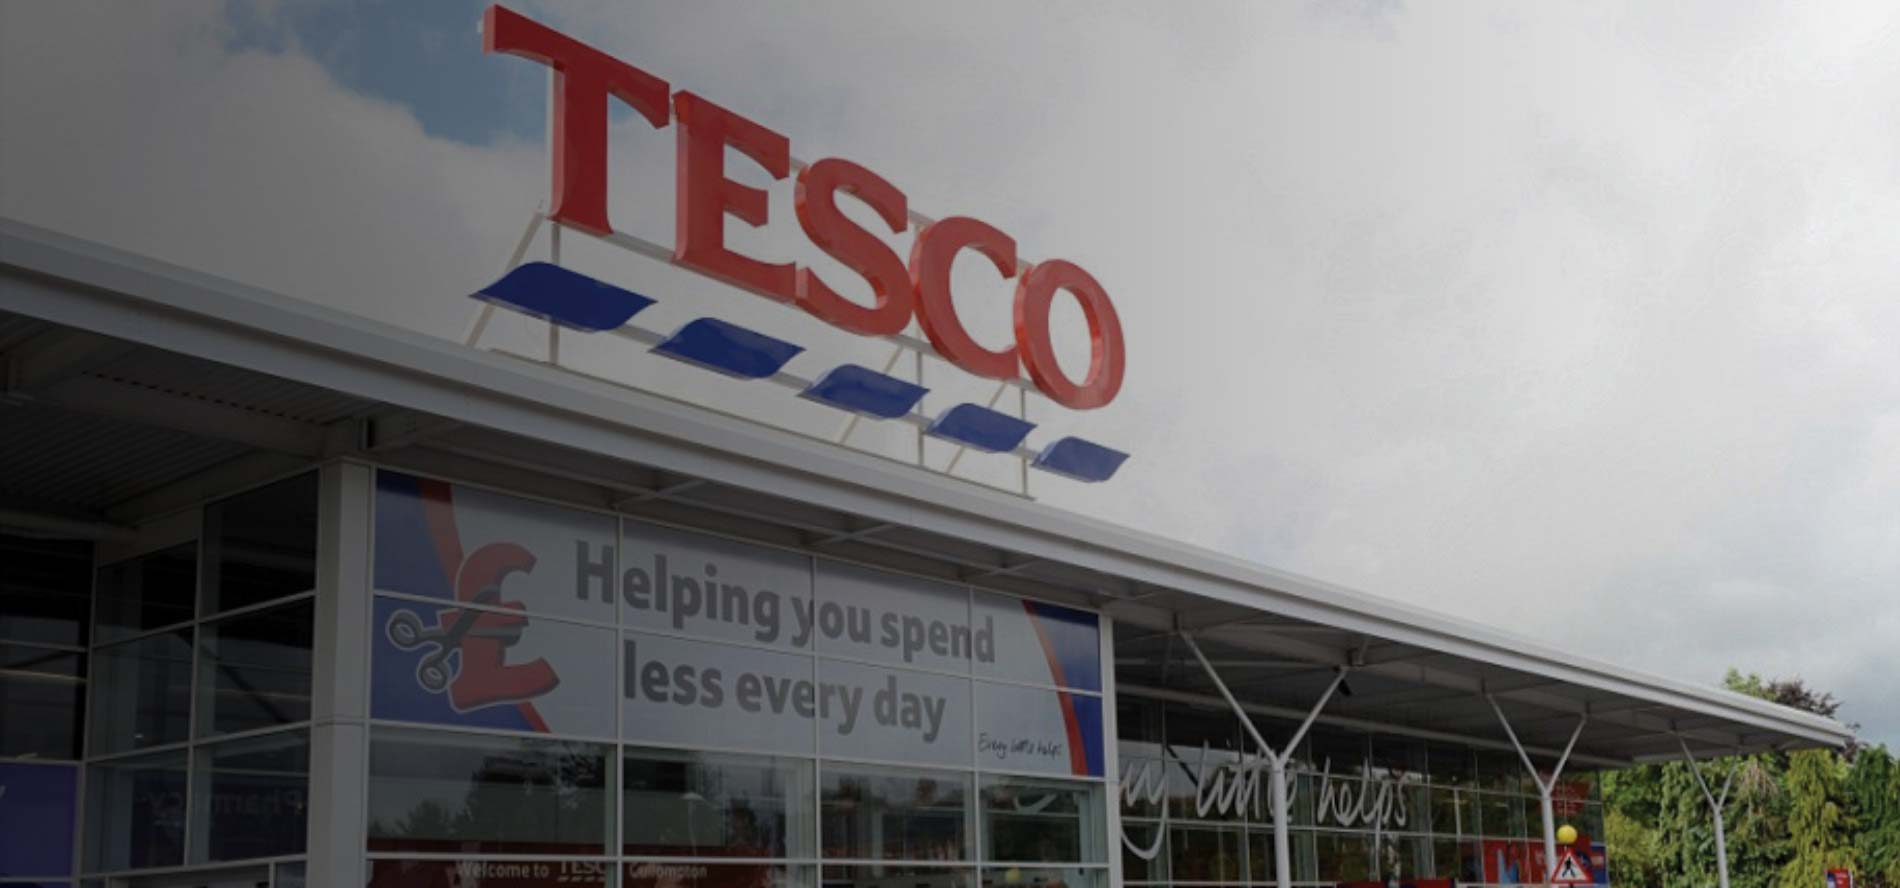 RGIS Case Study of Tesco Merchandising Support